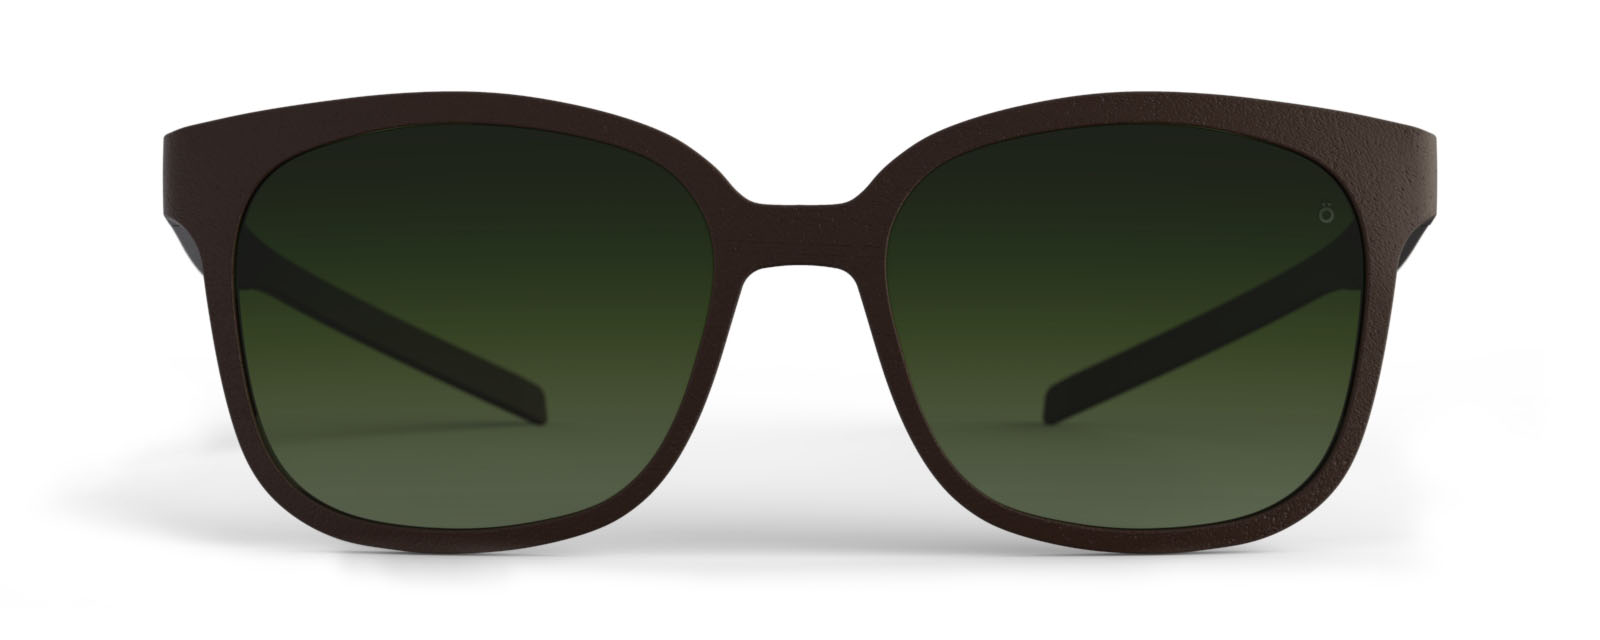 caine-mocca-sun-front-974-1